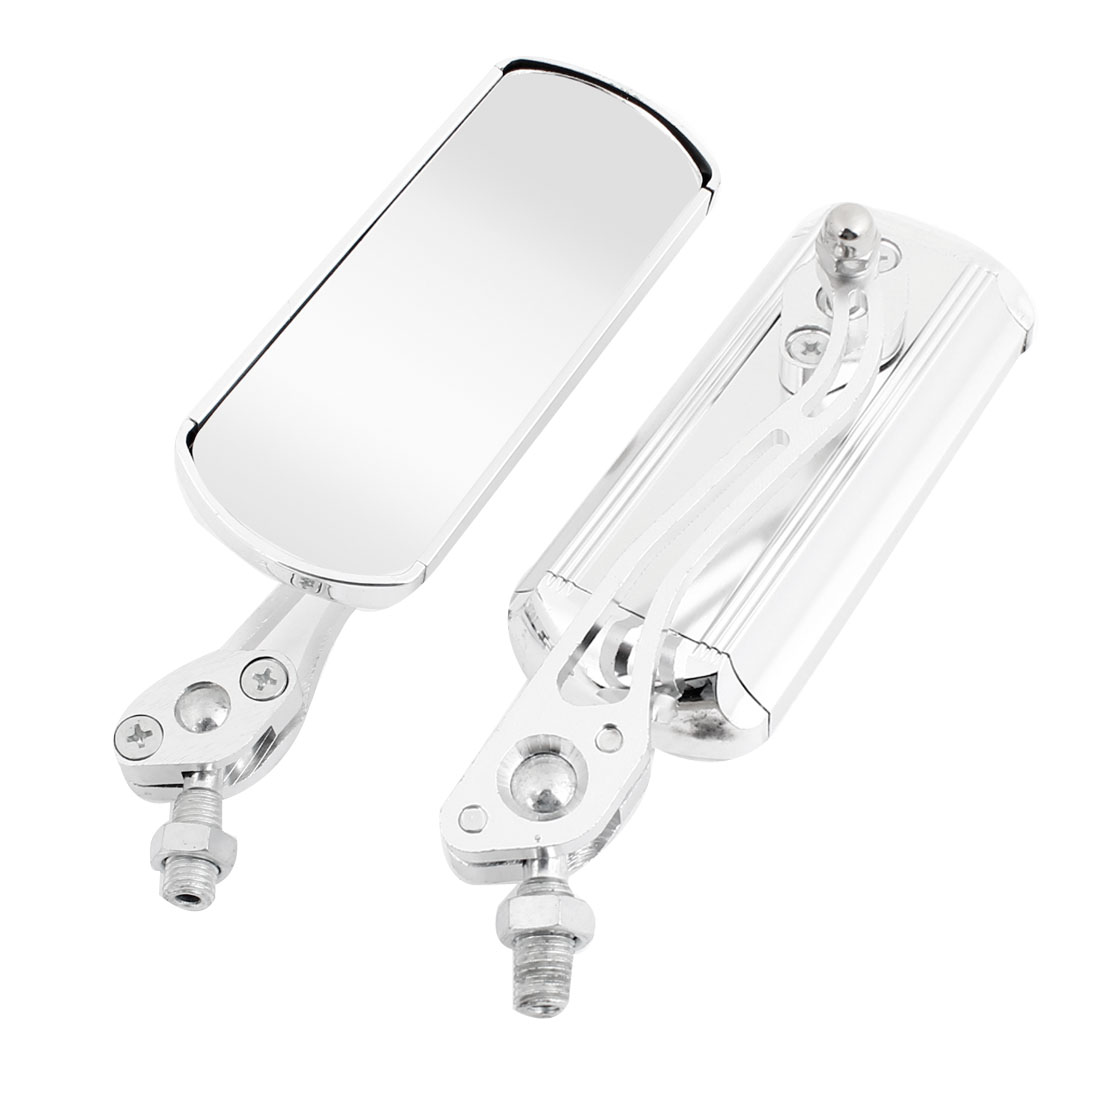 2PCS Silver Tone Metal Handle Rectangular Motorcycle Rearview Mirror